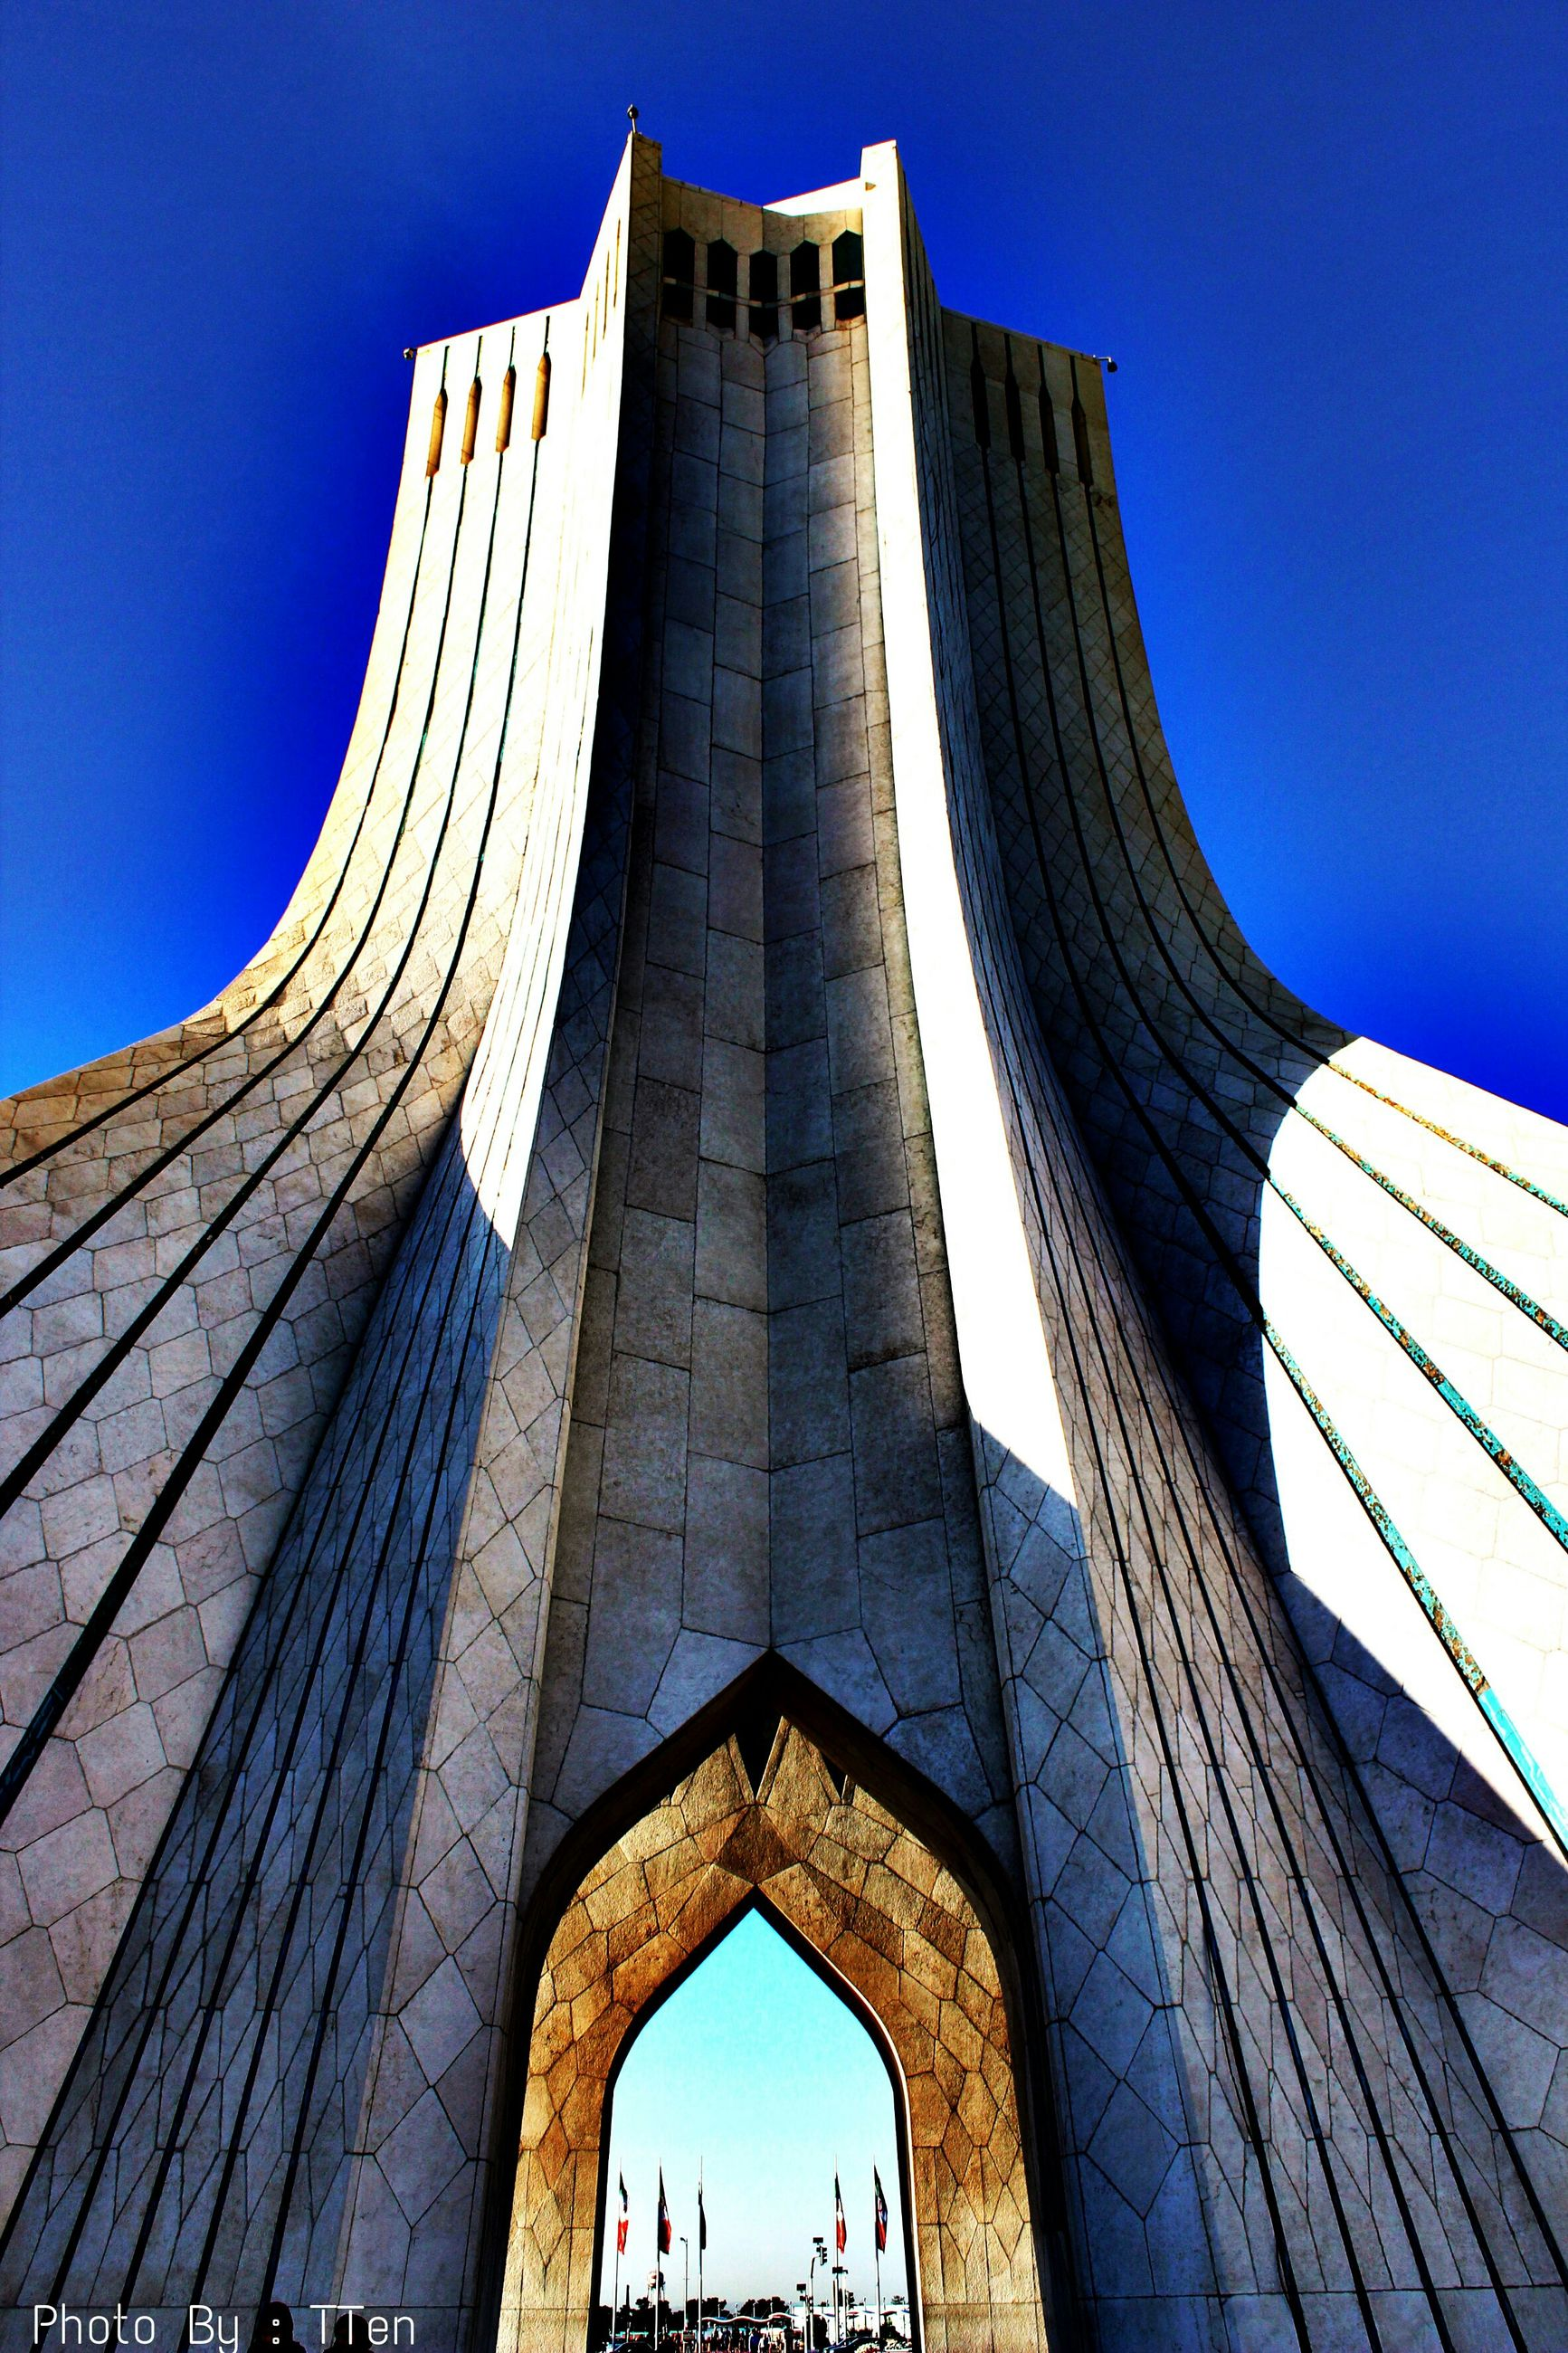 architecture, built structure, low angle view, building exterior, famous place, tower, tall - high, international landmark, modern, travel destinations, skyscraper, tourism, capital cities, city, clear sky, travel, arch, blue, office building, sky